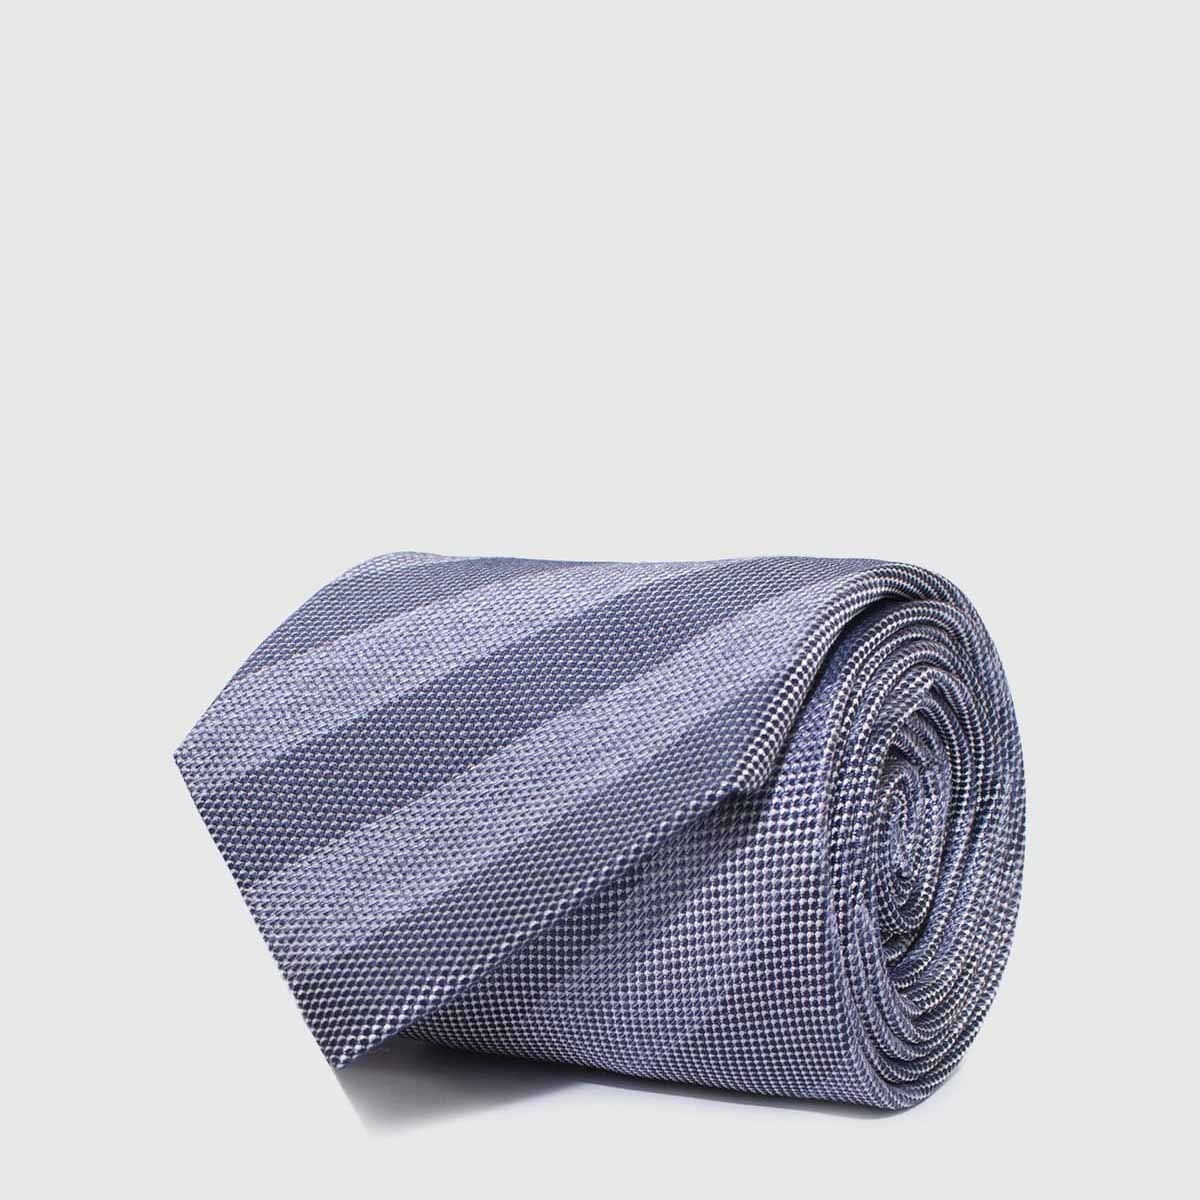 Woven 5-Folds Tie with striped gray background